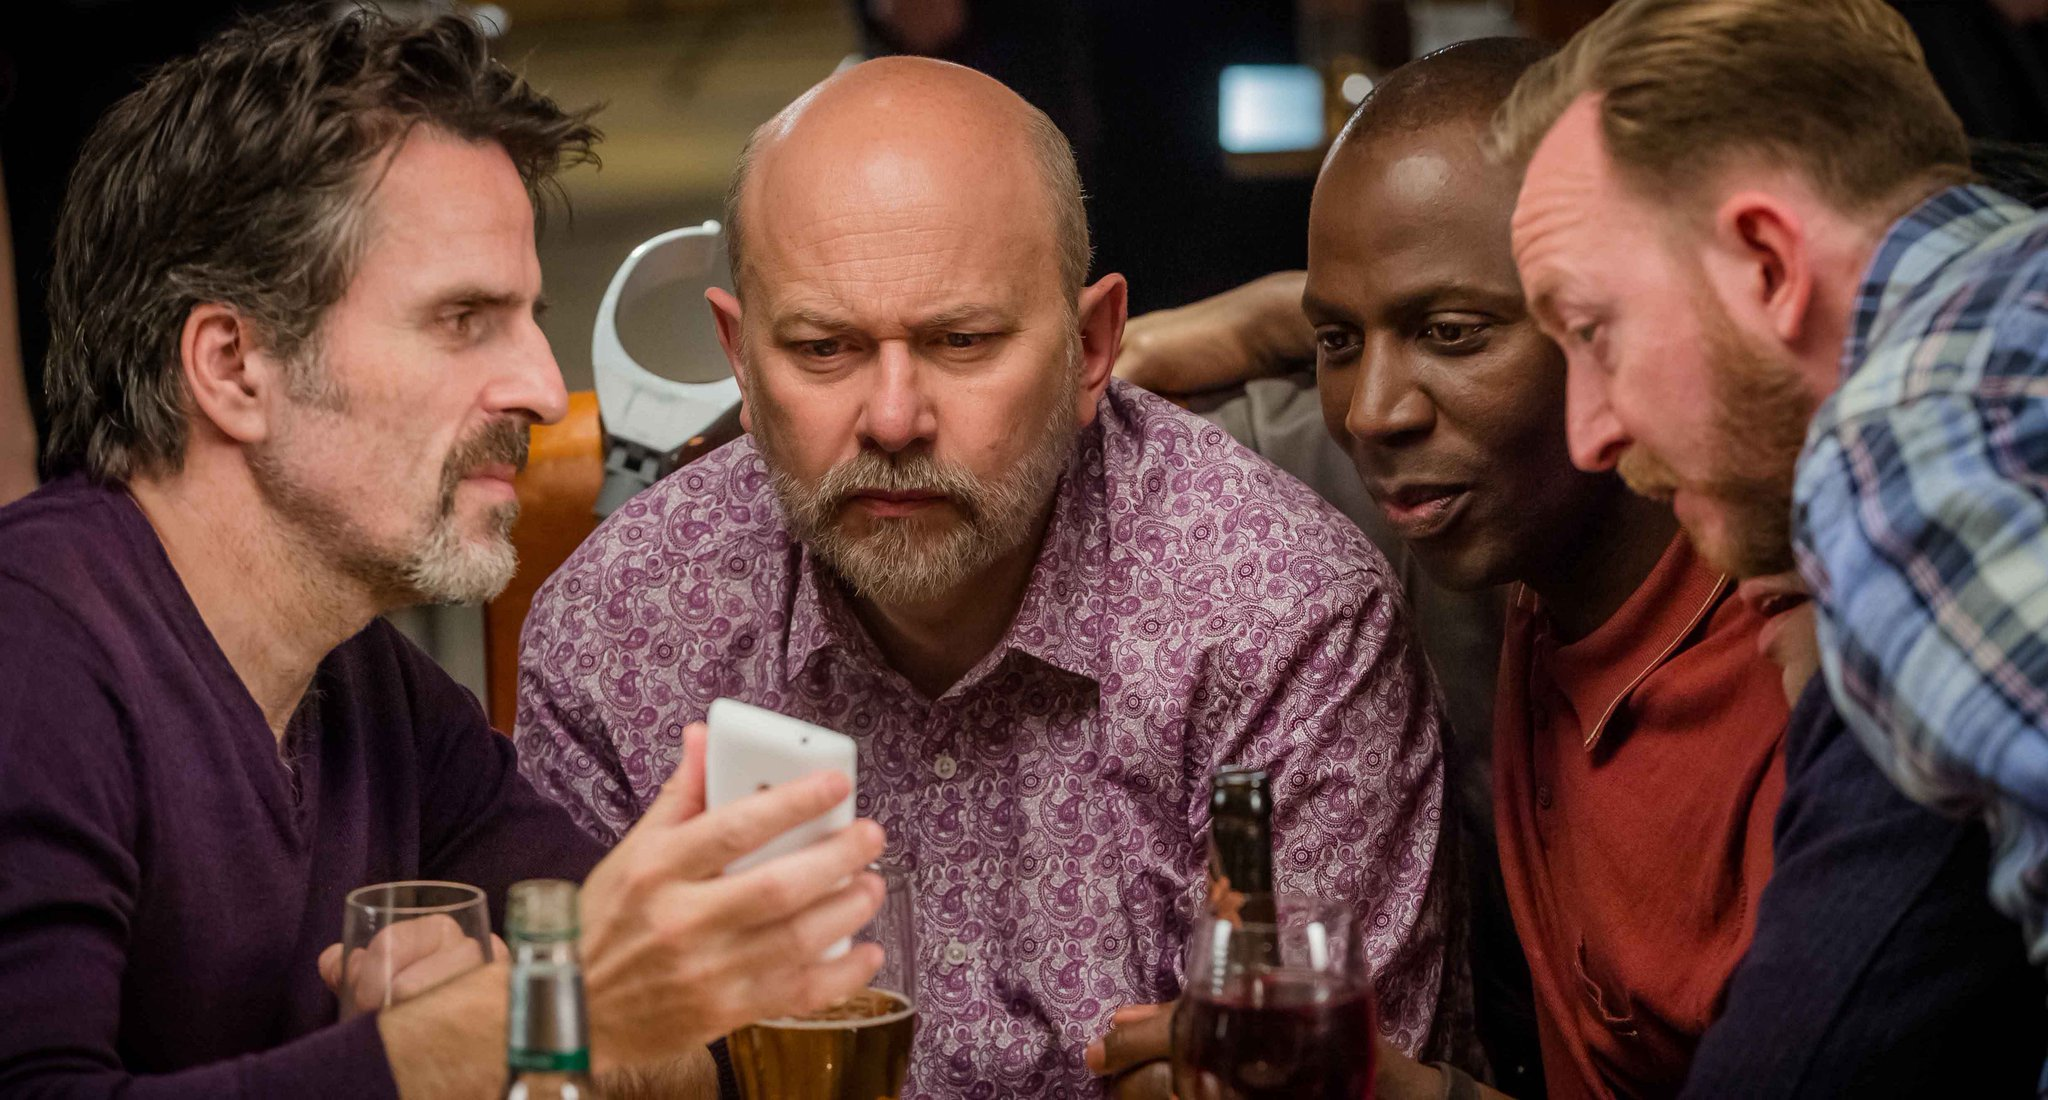 #Cucumber peaked at 960,000 viewers last night and generated a strong 9,100 tweets http://t.co/wSYlocpNEa